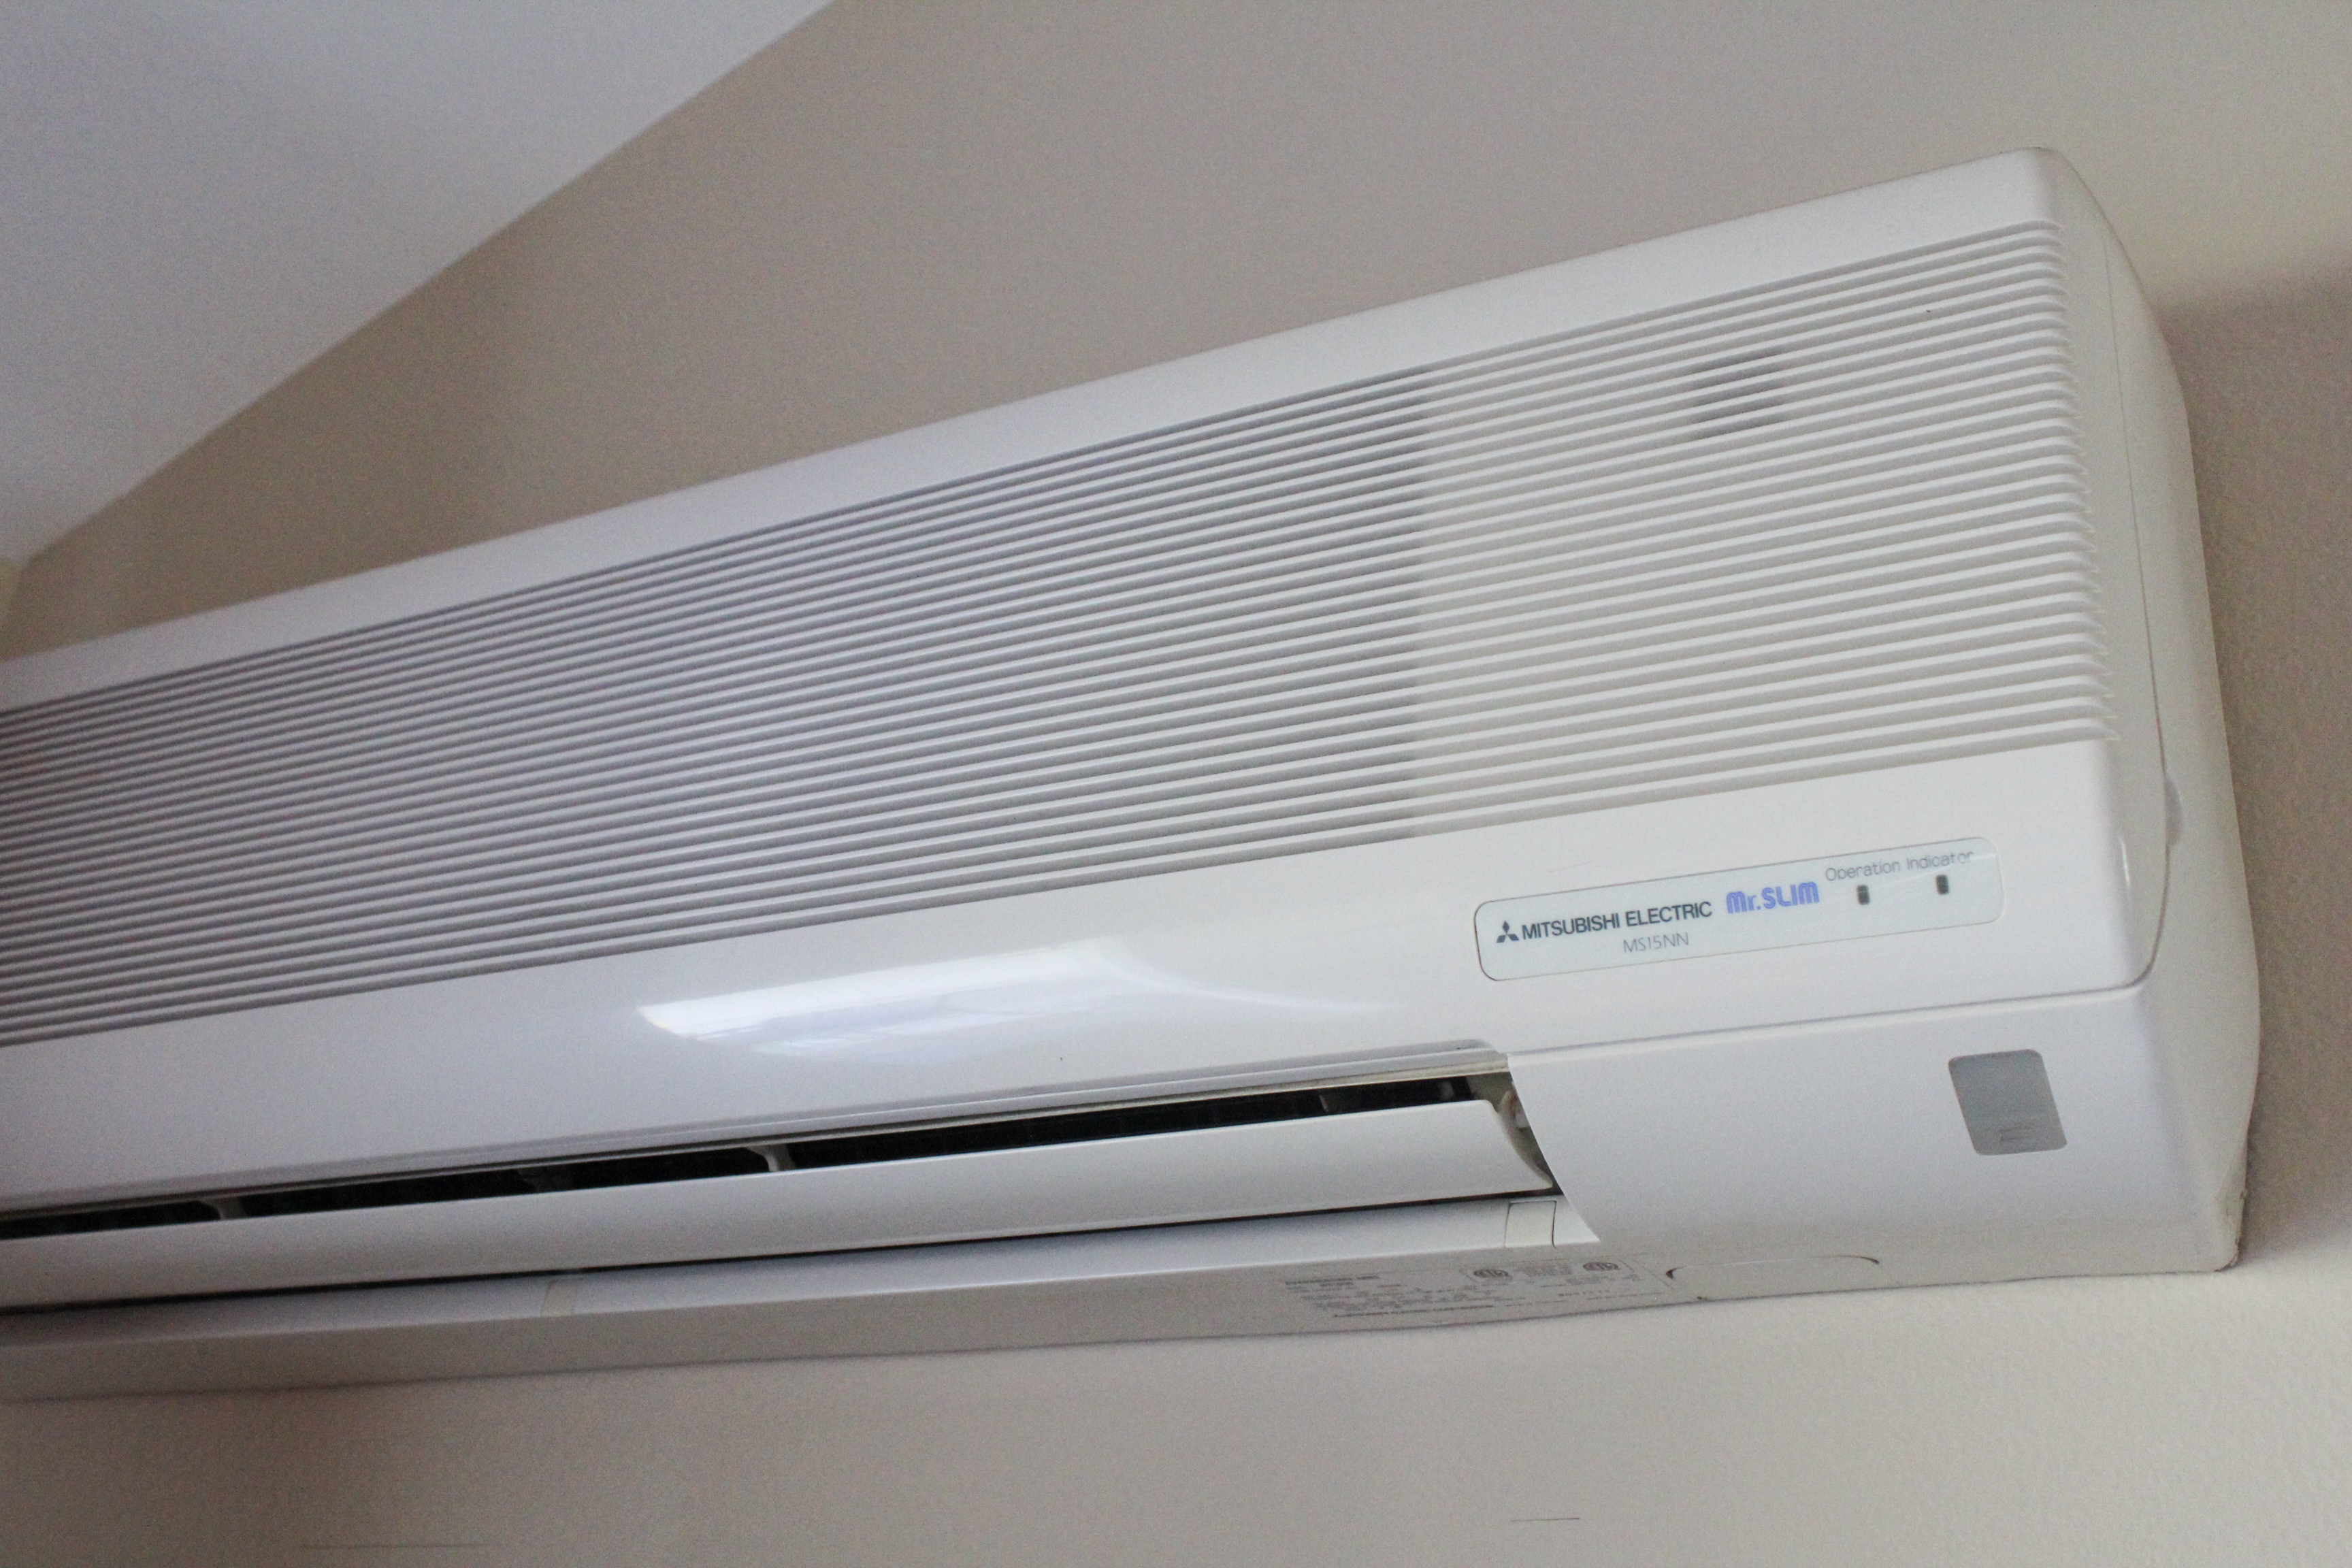 Wall Mounted Heating And Cooling Units : Ductless heating and cooling systems to lower your costs